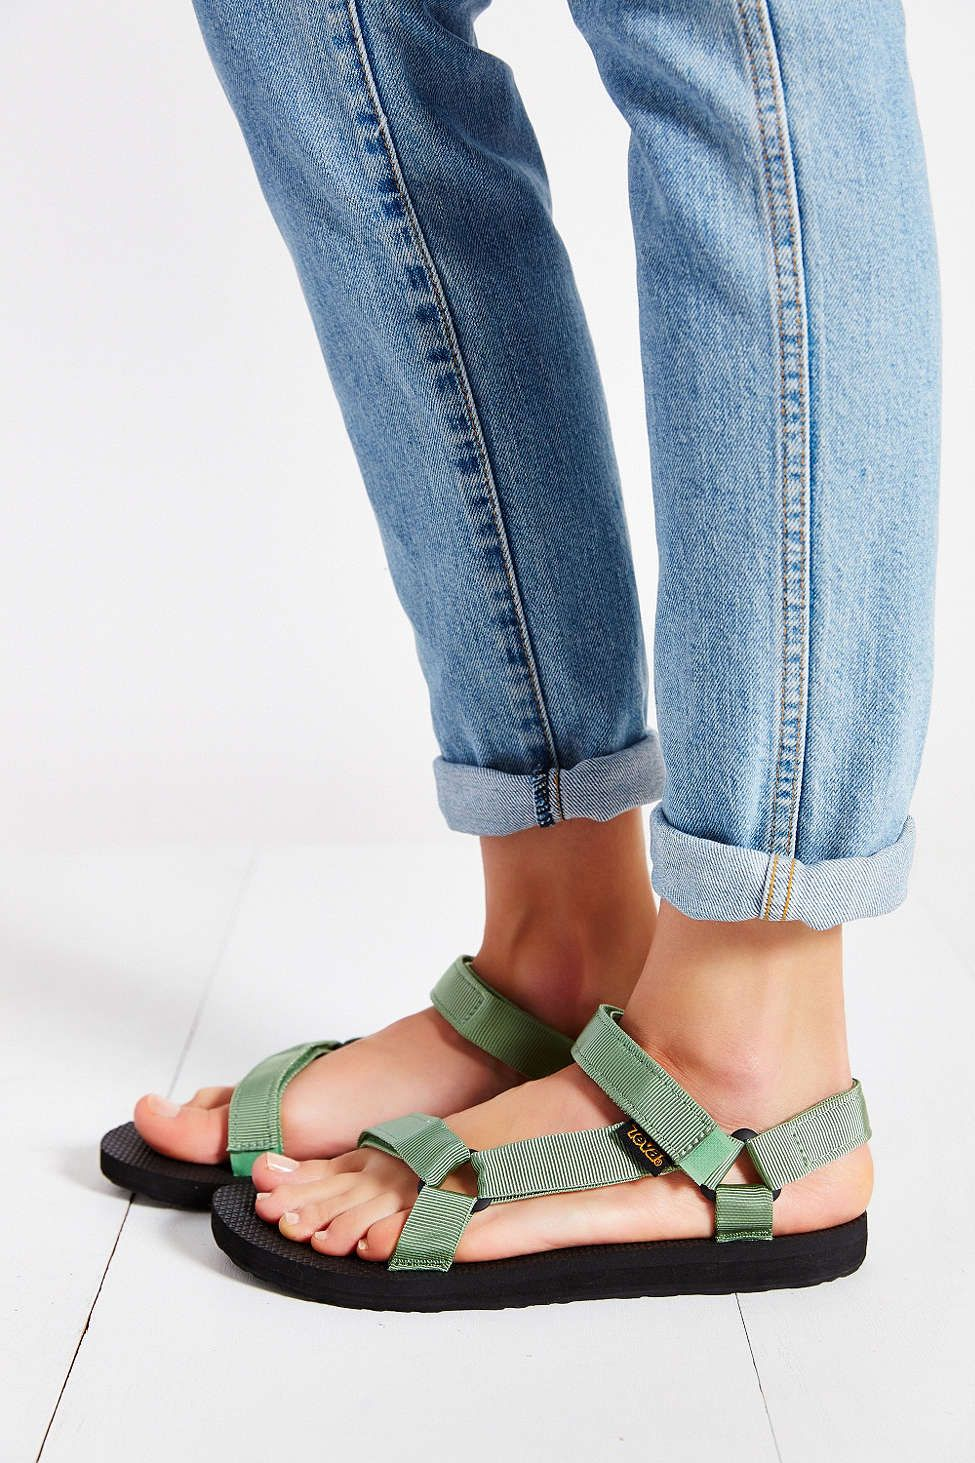 0a7a94bf4fbf0e I love the authentic 90s colors of this vegan teva sandals.